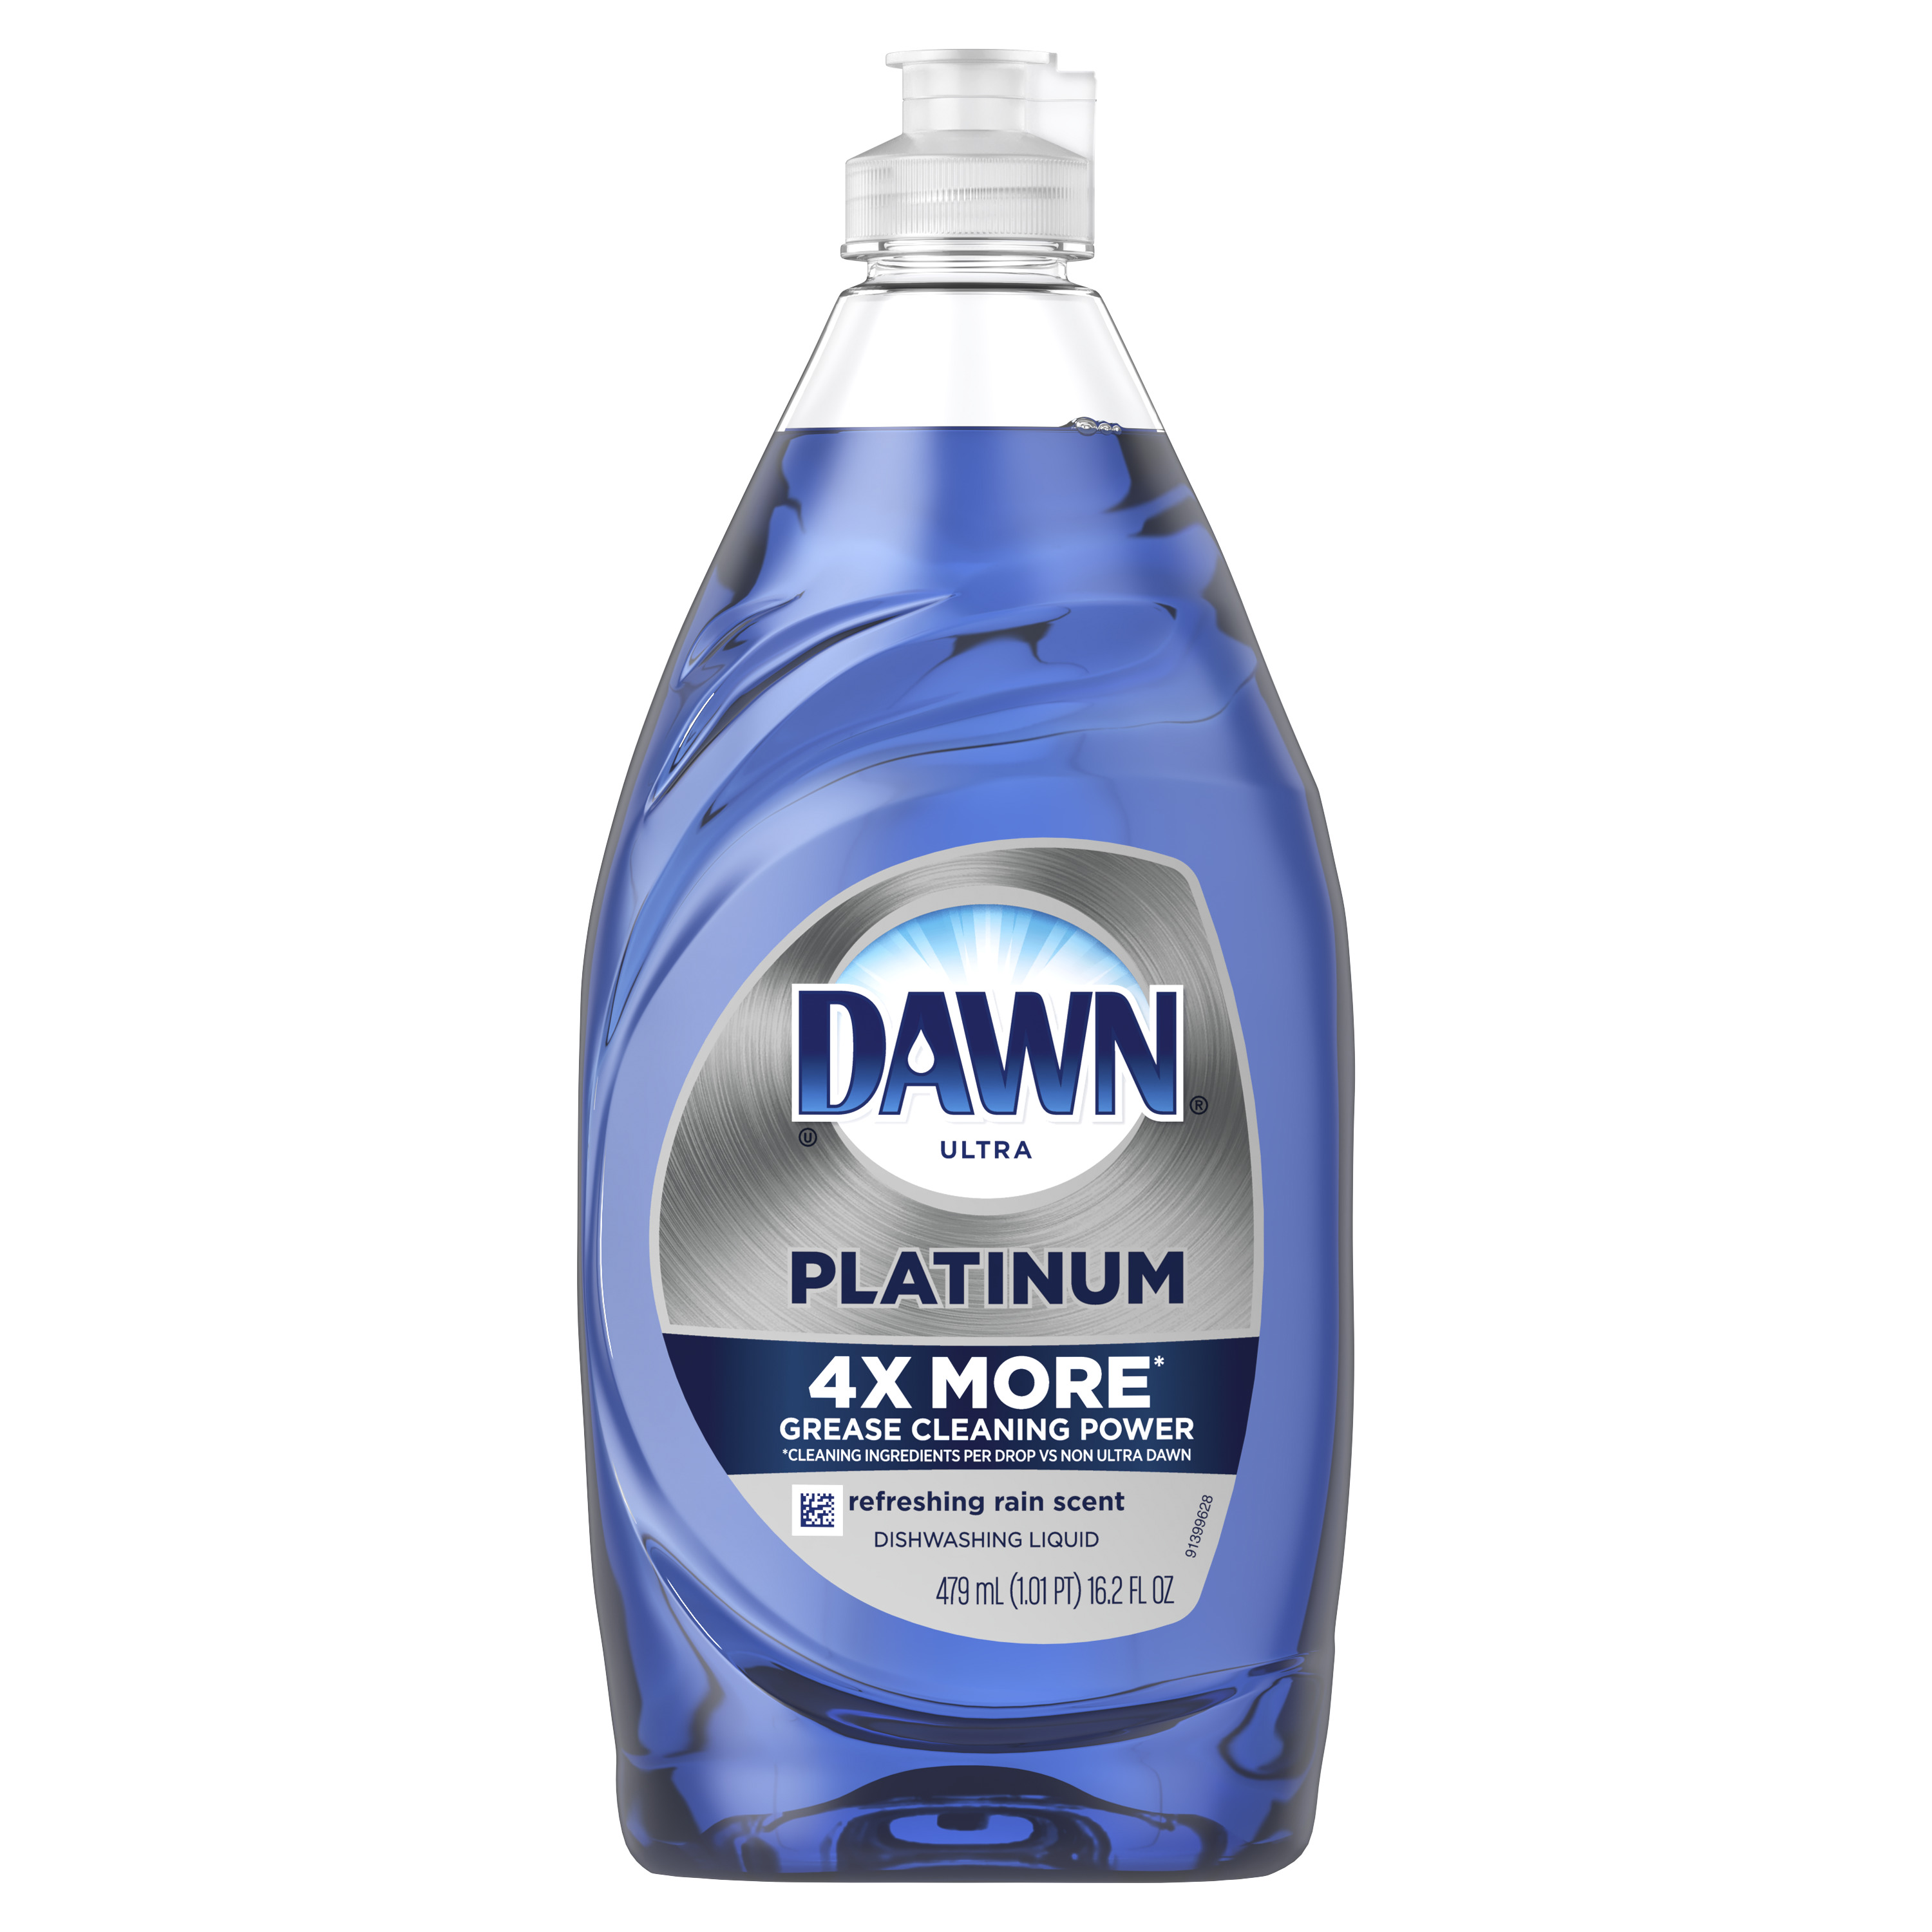 Dawn Platinum Dishwashing Liquid Dish Soap, Refreshing Rain, 16.2 fl oz